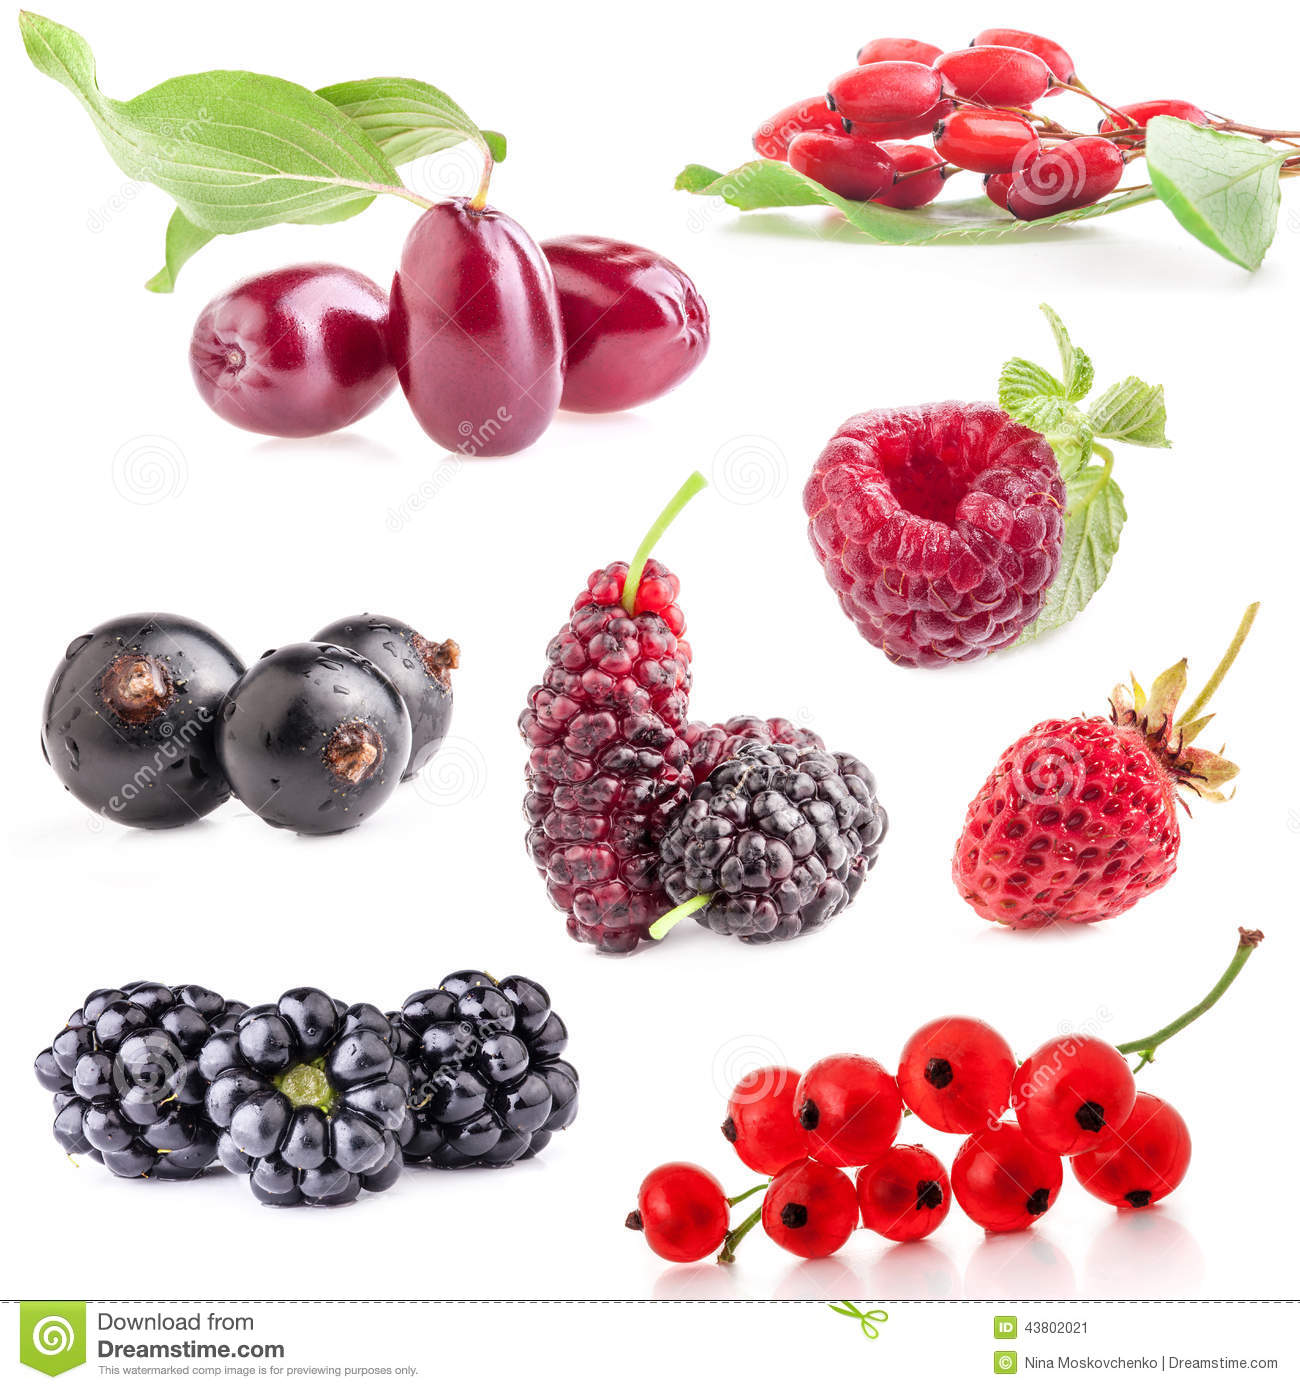 Collections of berry